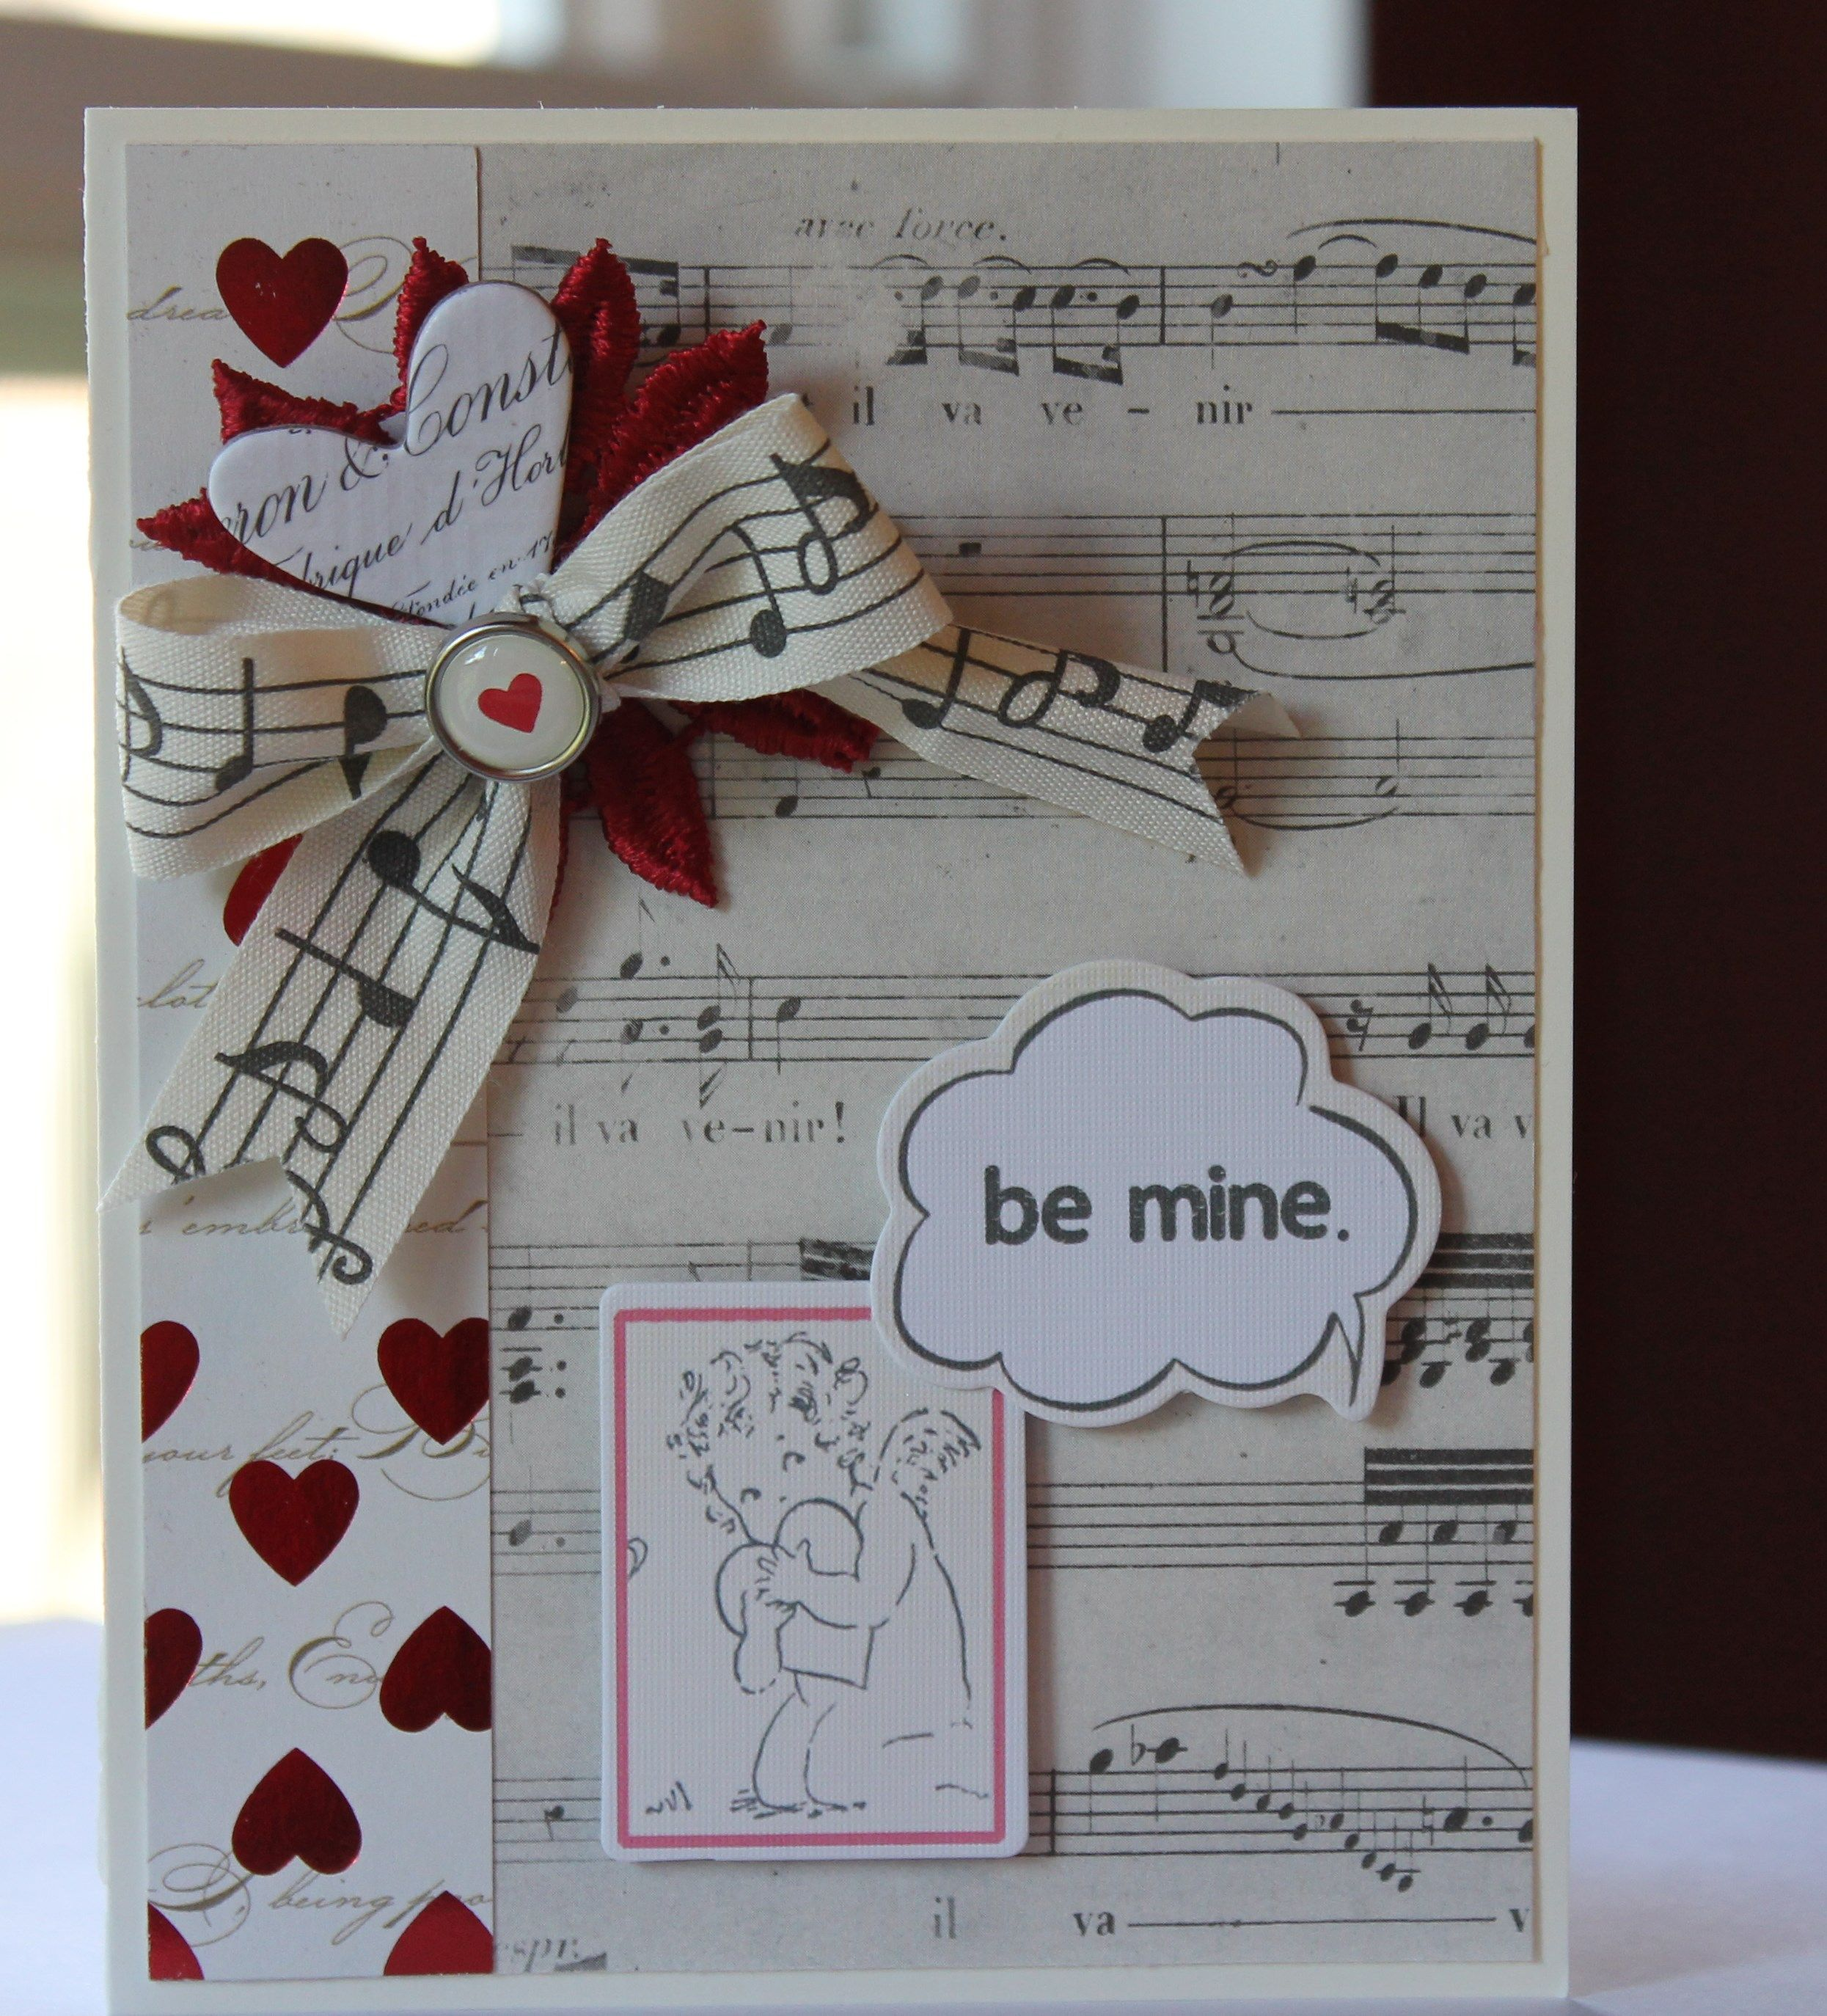 Valentineus card betsy veldman design tags hearts music music